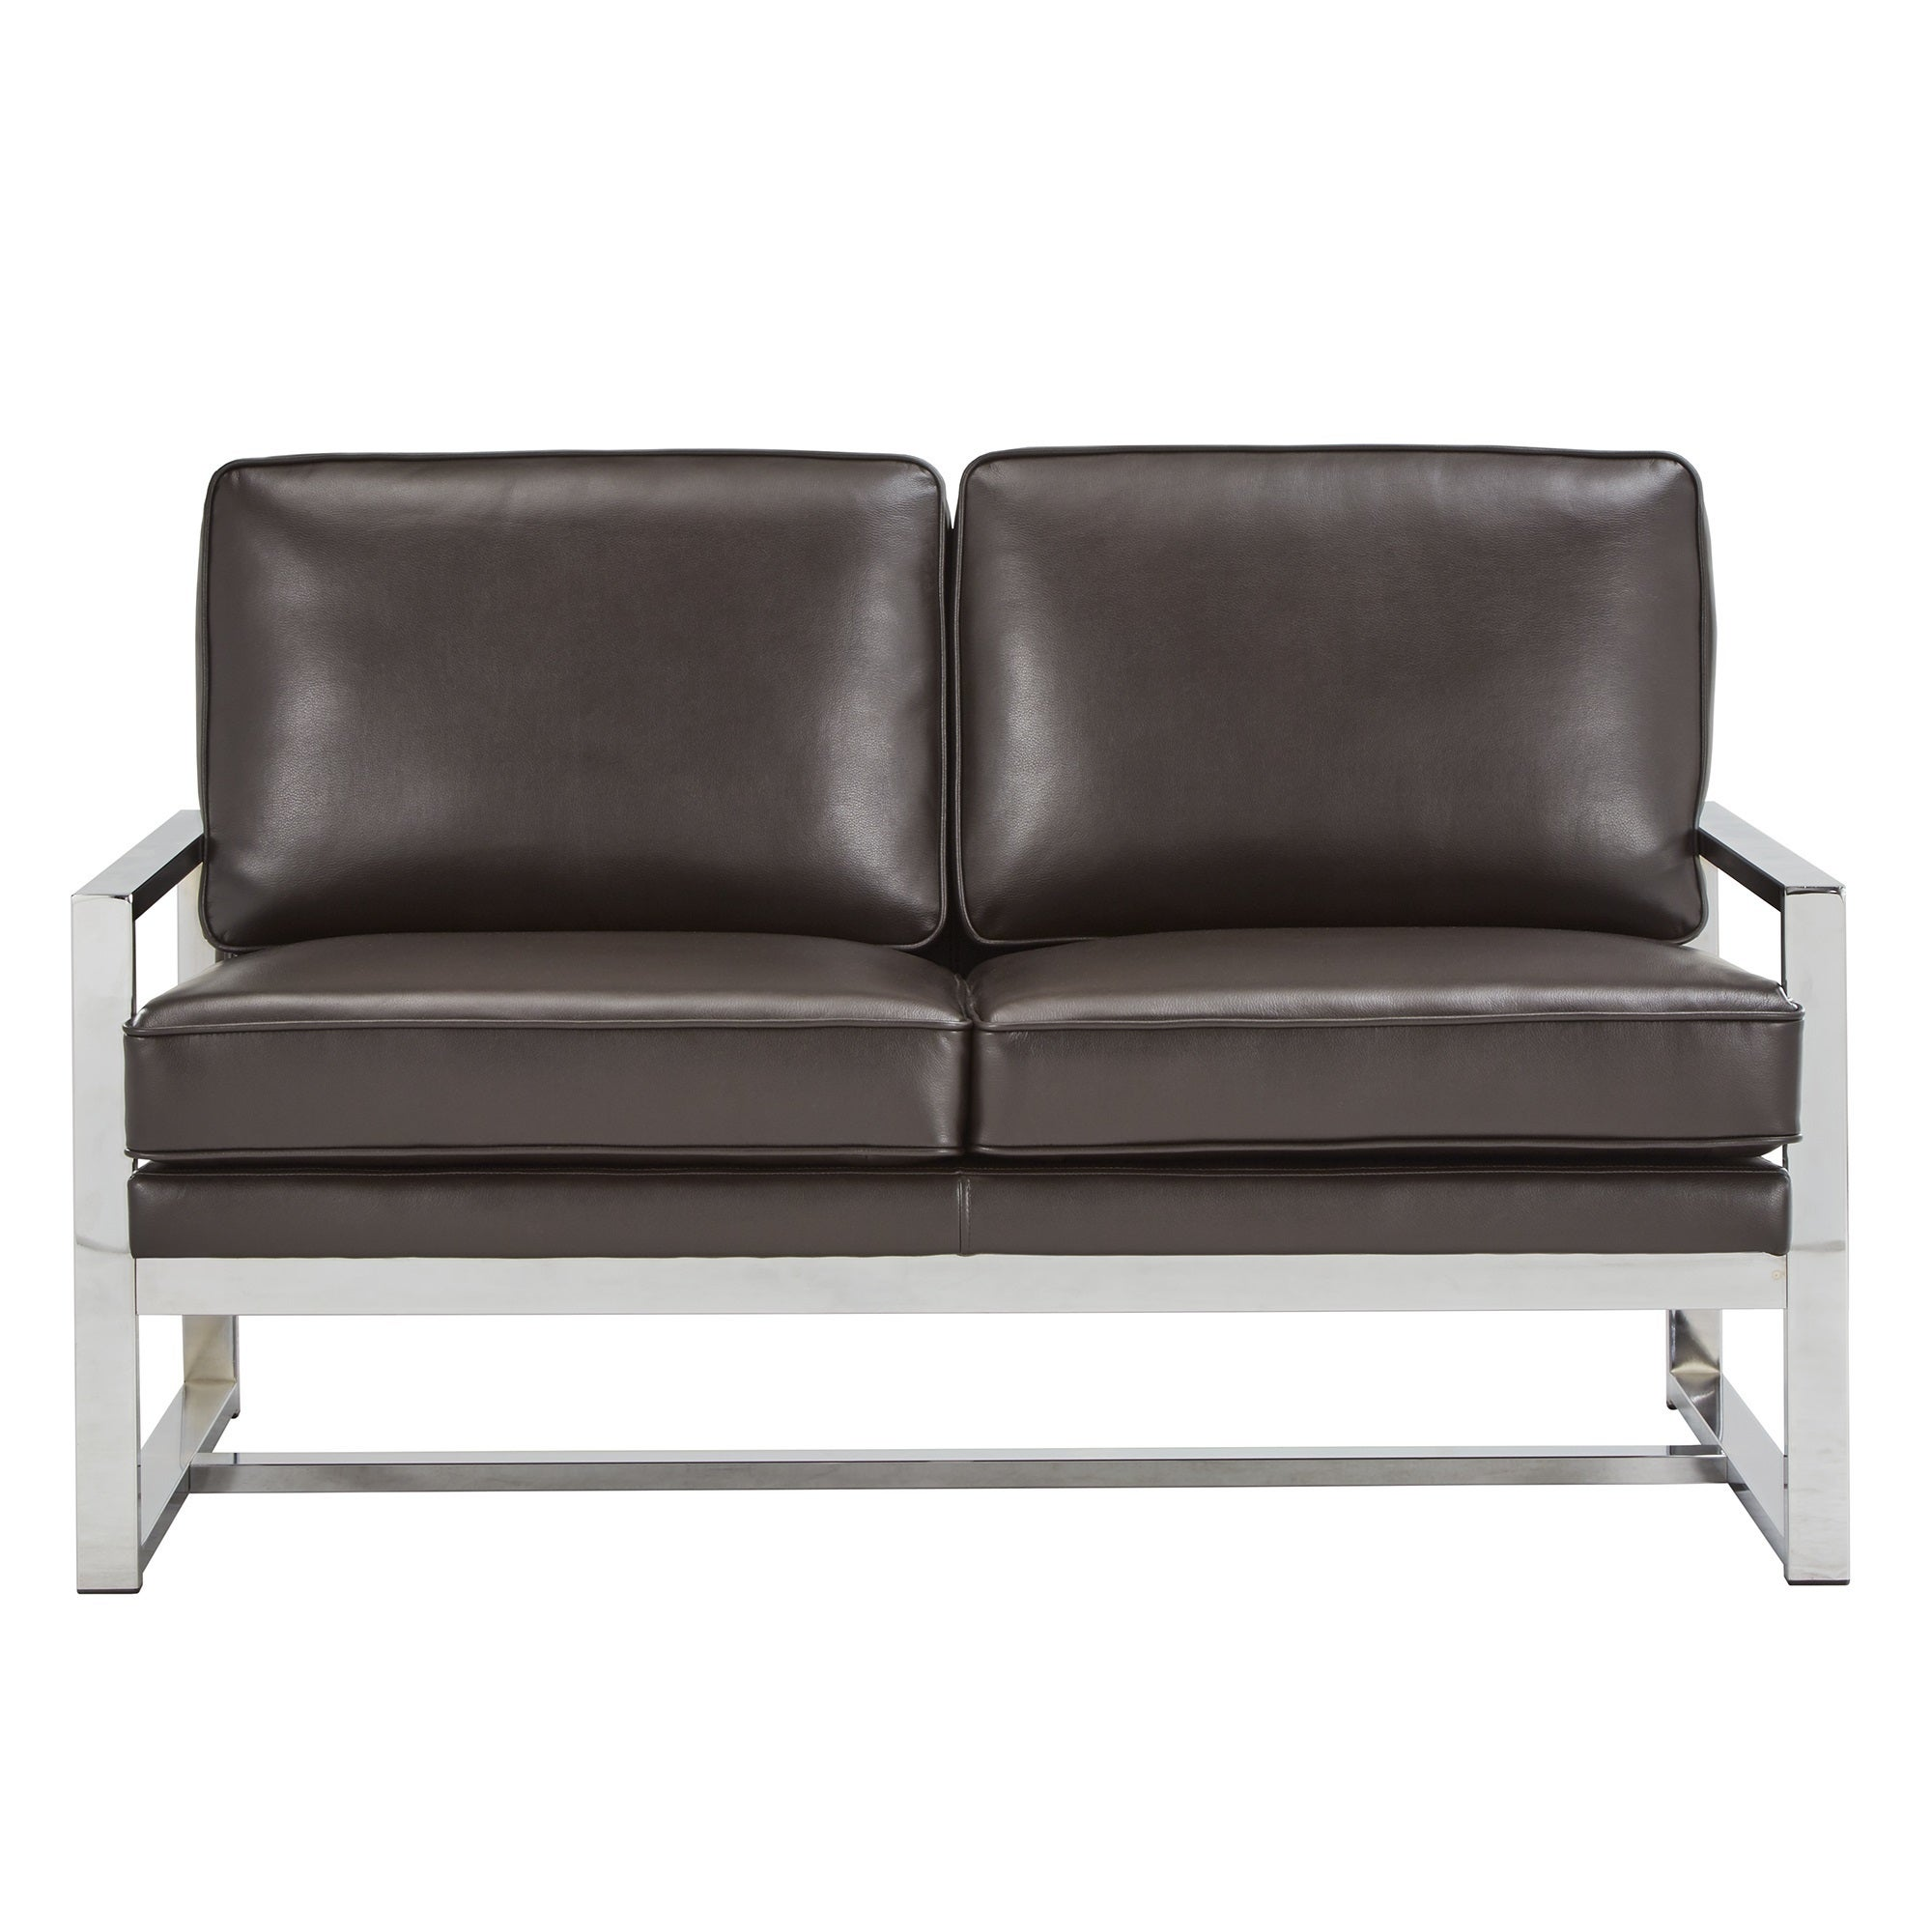 Shop Rafael Chrome Sofa and Loveseat by iNSPIRE Q Modern - Free ...